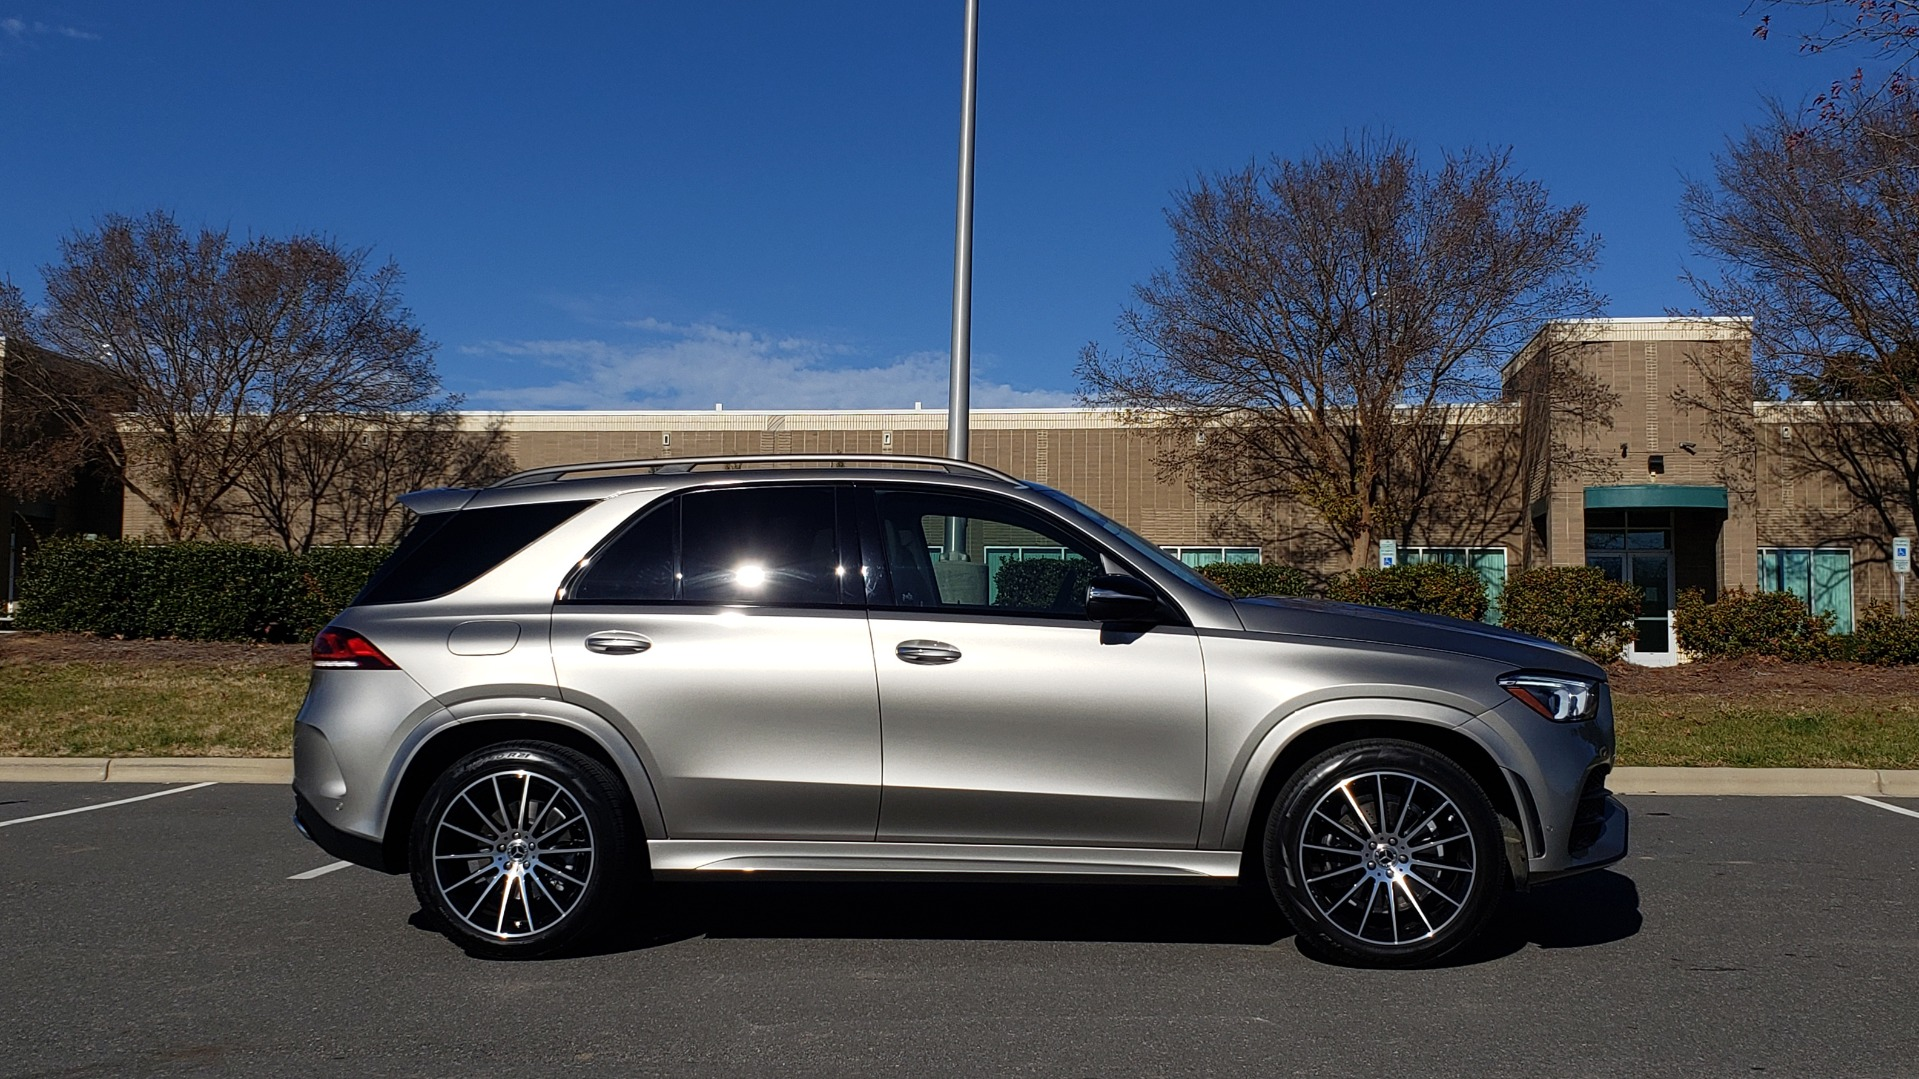 Used 2020 Mercedes-Benz GLE 350 PREMIUM / NAV / PARK ASST / NIGHT PKG / AMG LINE EXT / REARVIEW for sale Sold at Formula Imports in Charlotte NC 28227 9